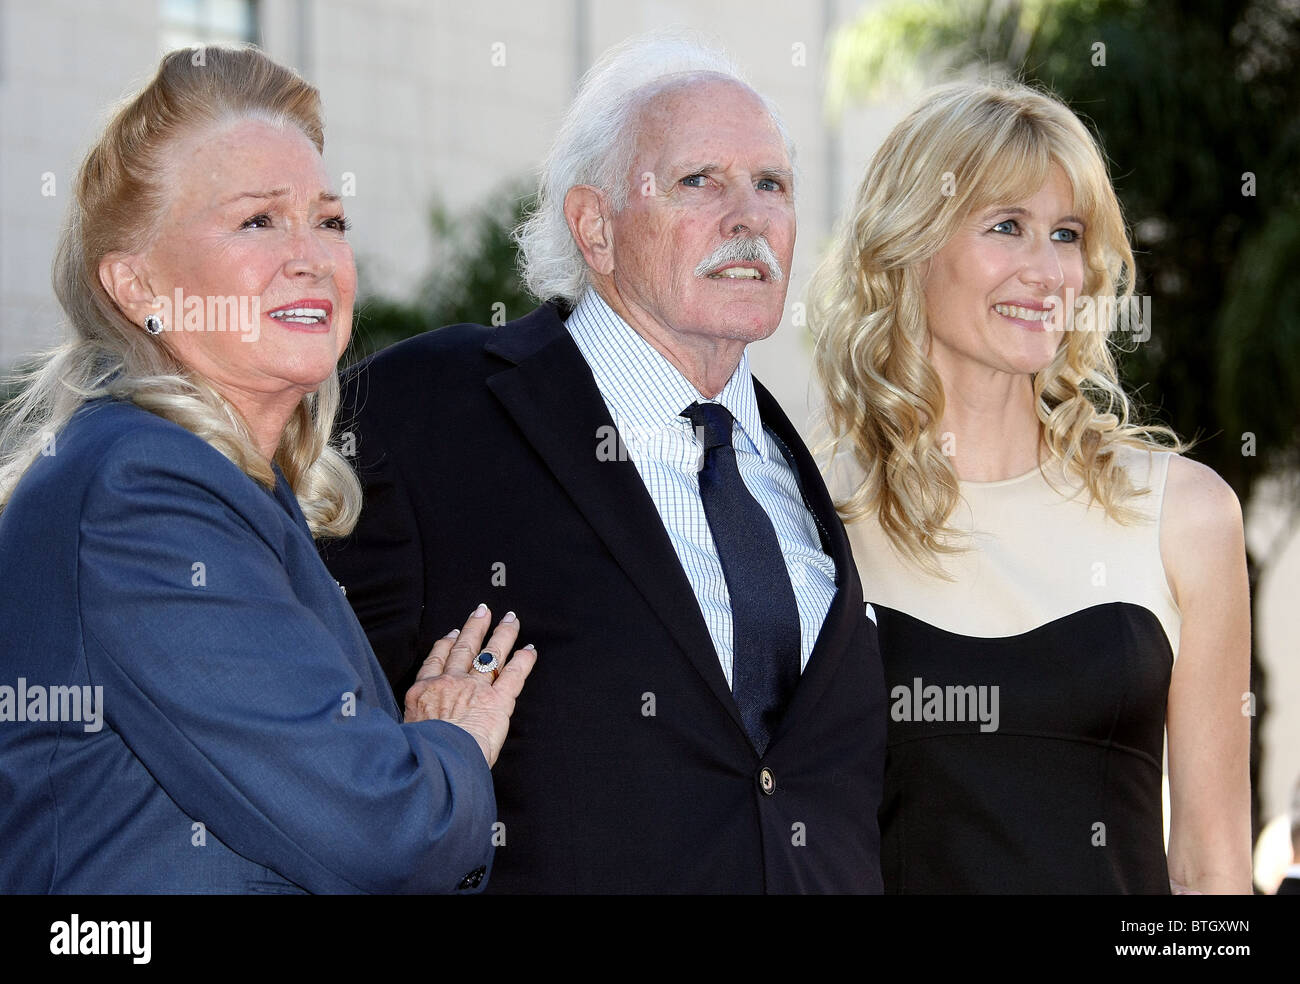 DIANE LADD BRUCE DERN LAURA DERN BRUCE DERN LAURA DERN AND DIANE LASS HONORED WITH STARS ON THE HOLLYWOOD WALK OF FAME LOS AN